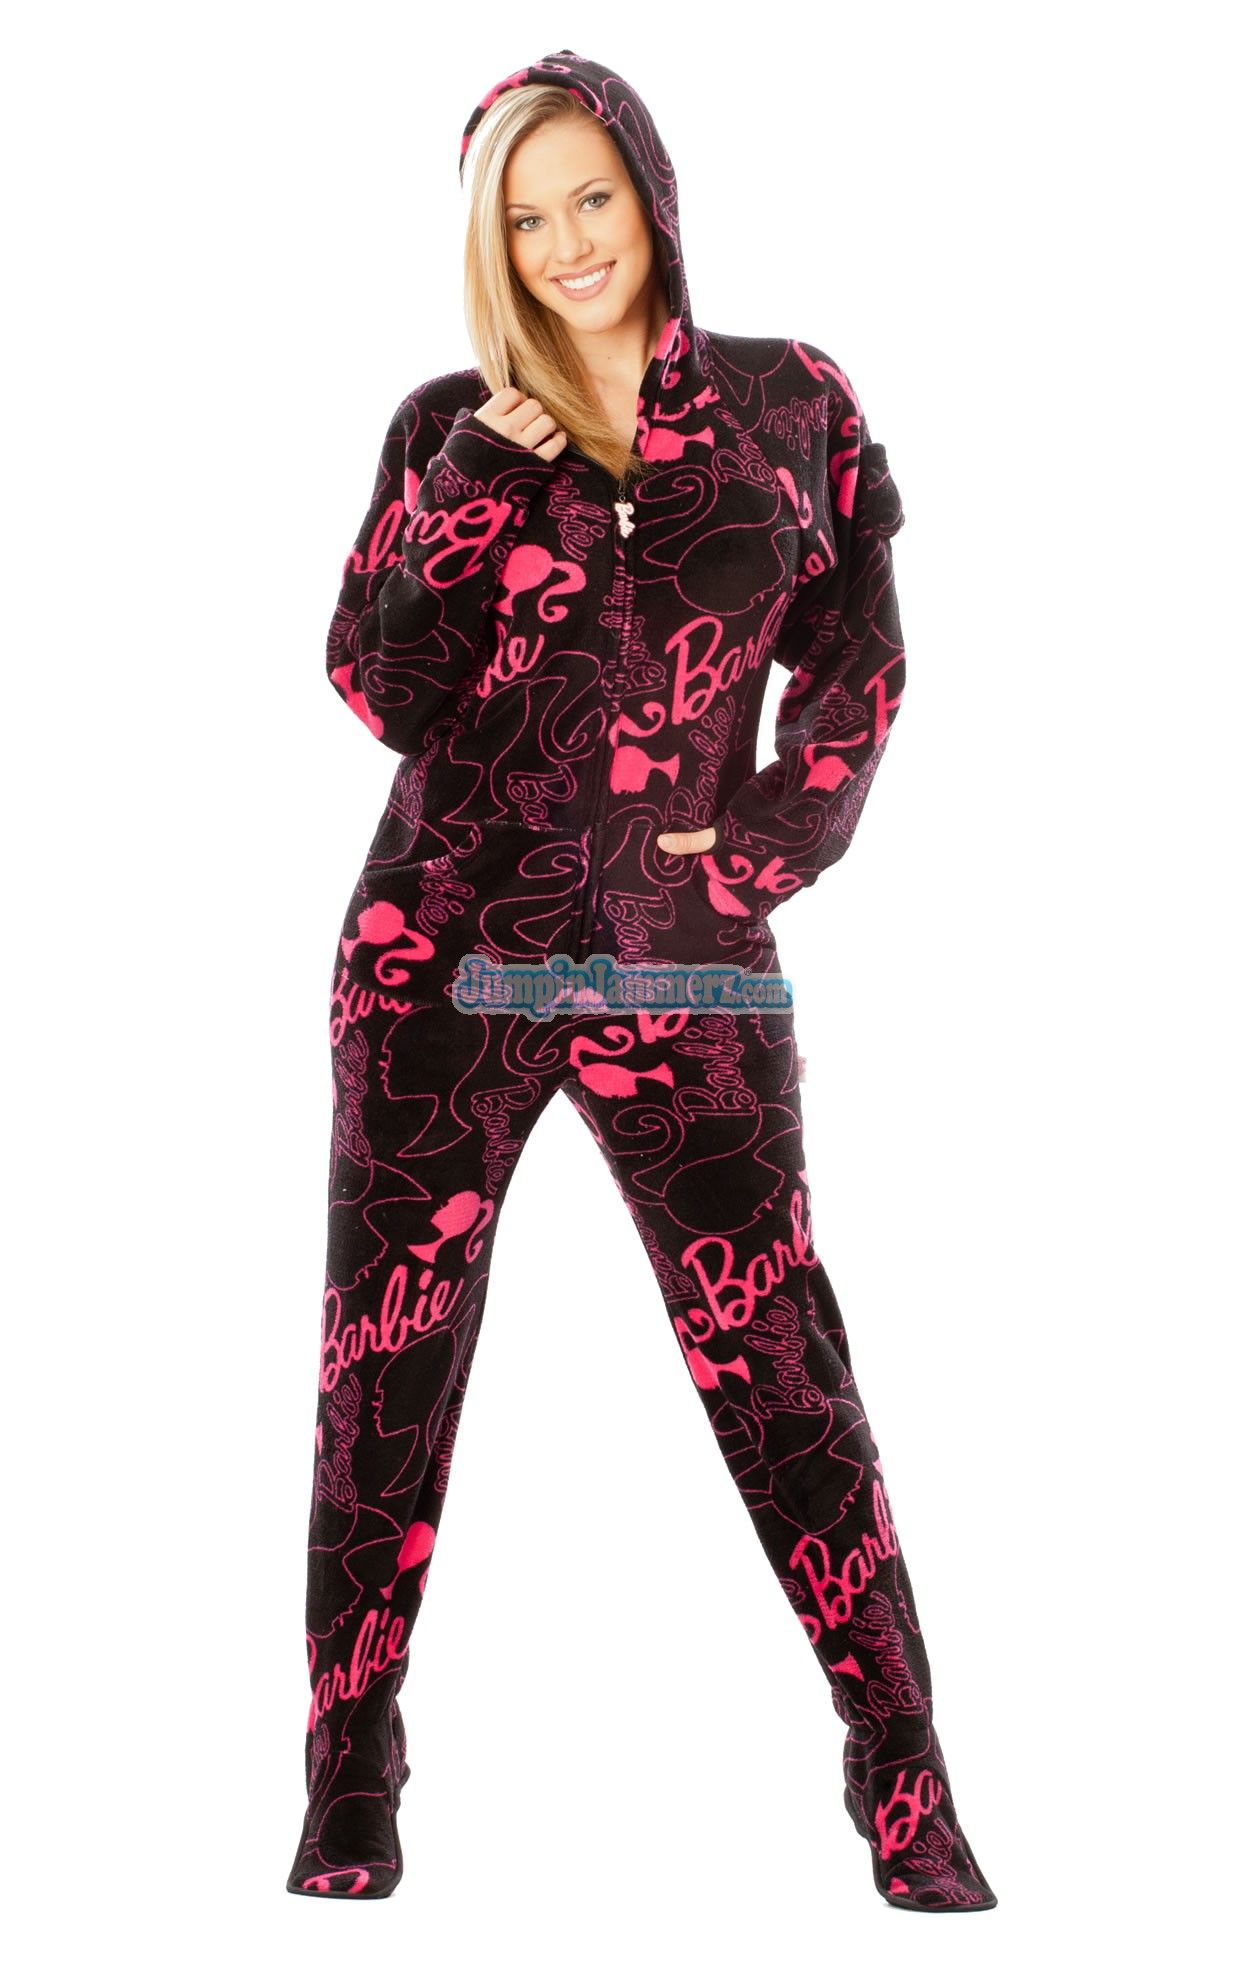 2592facc50 Barbie - Hot Pink - Barbie Footed Pajamas - Pajamas Footie PJs Onesies One  Piece Adult Pajamas - JumpinJammerz.com